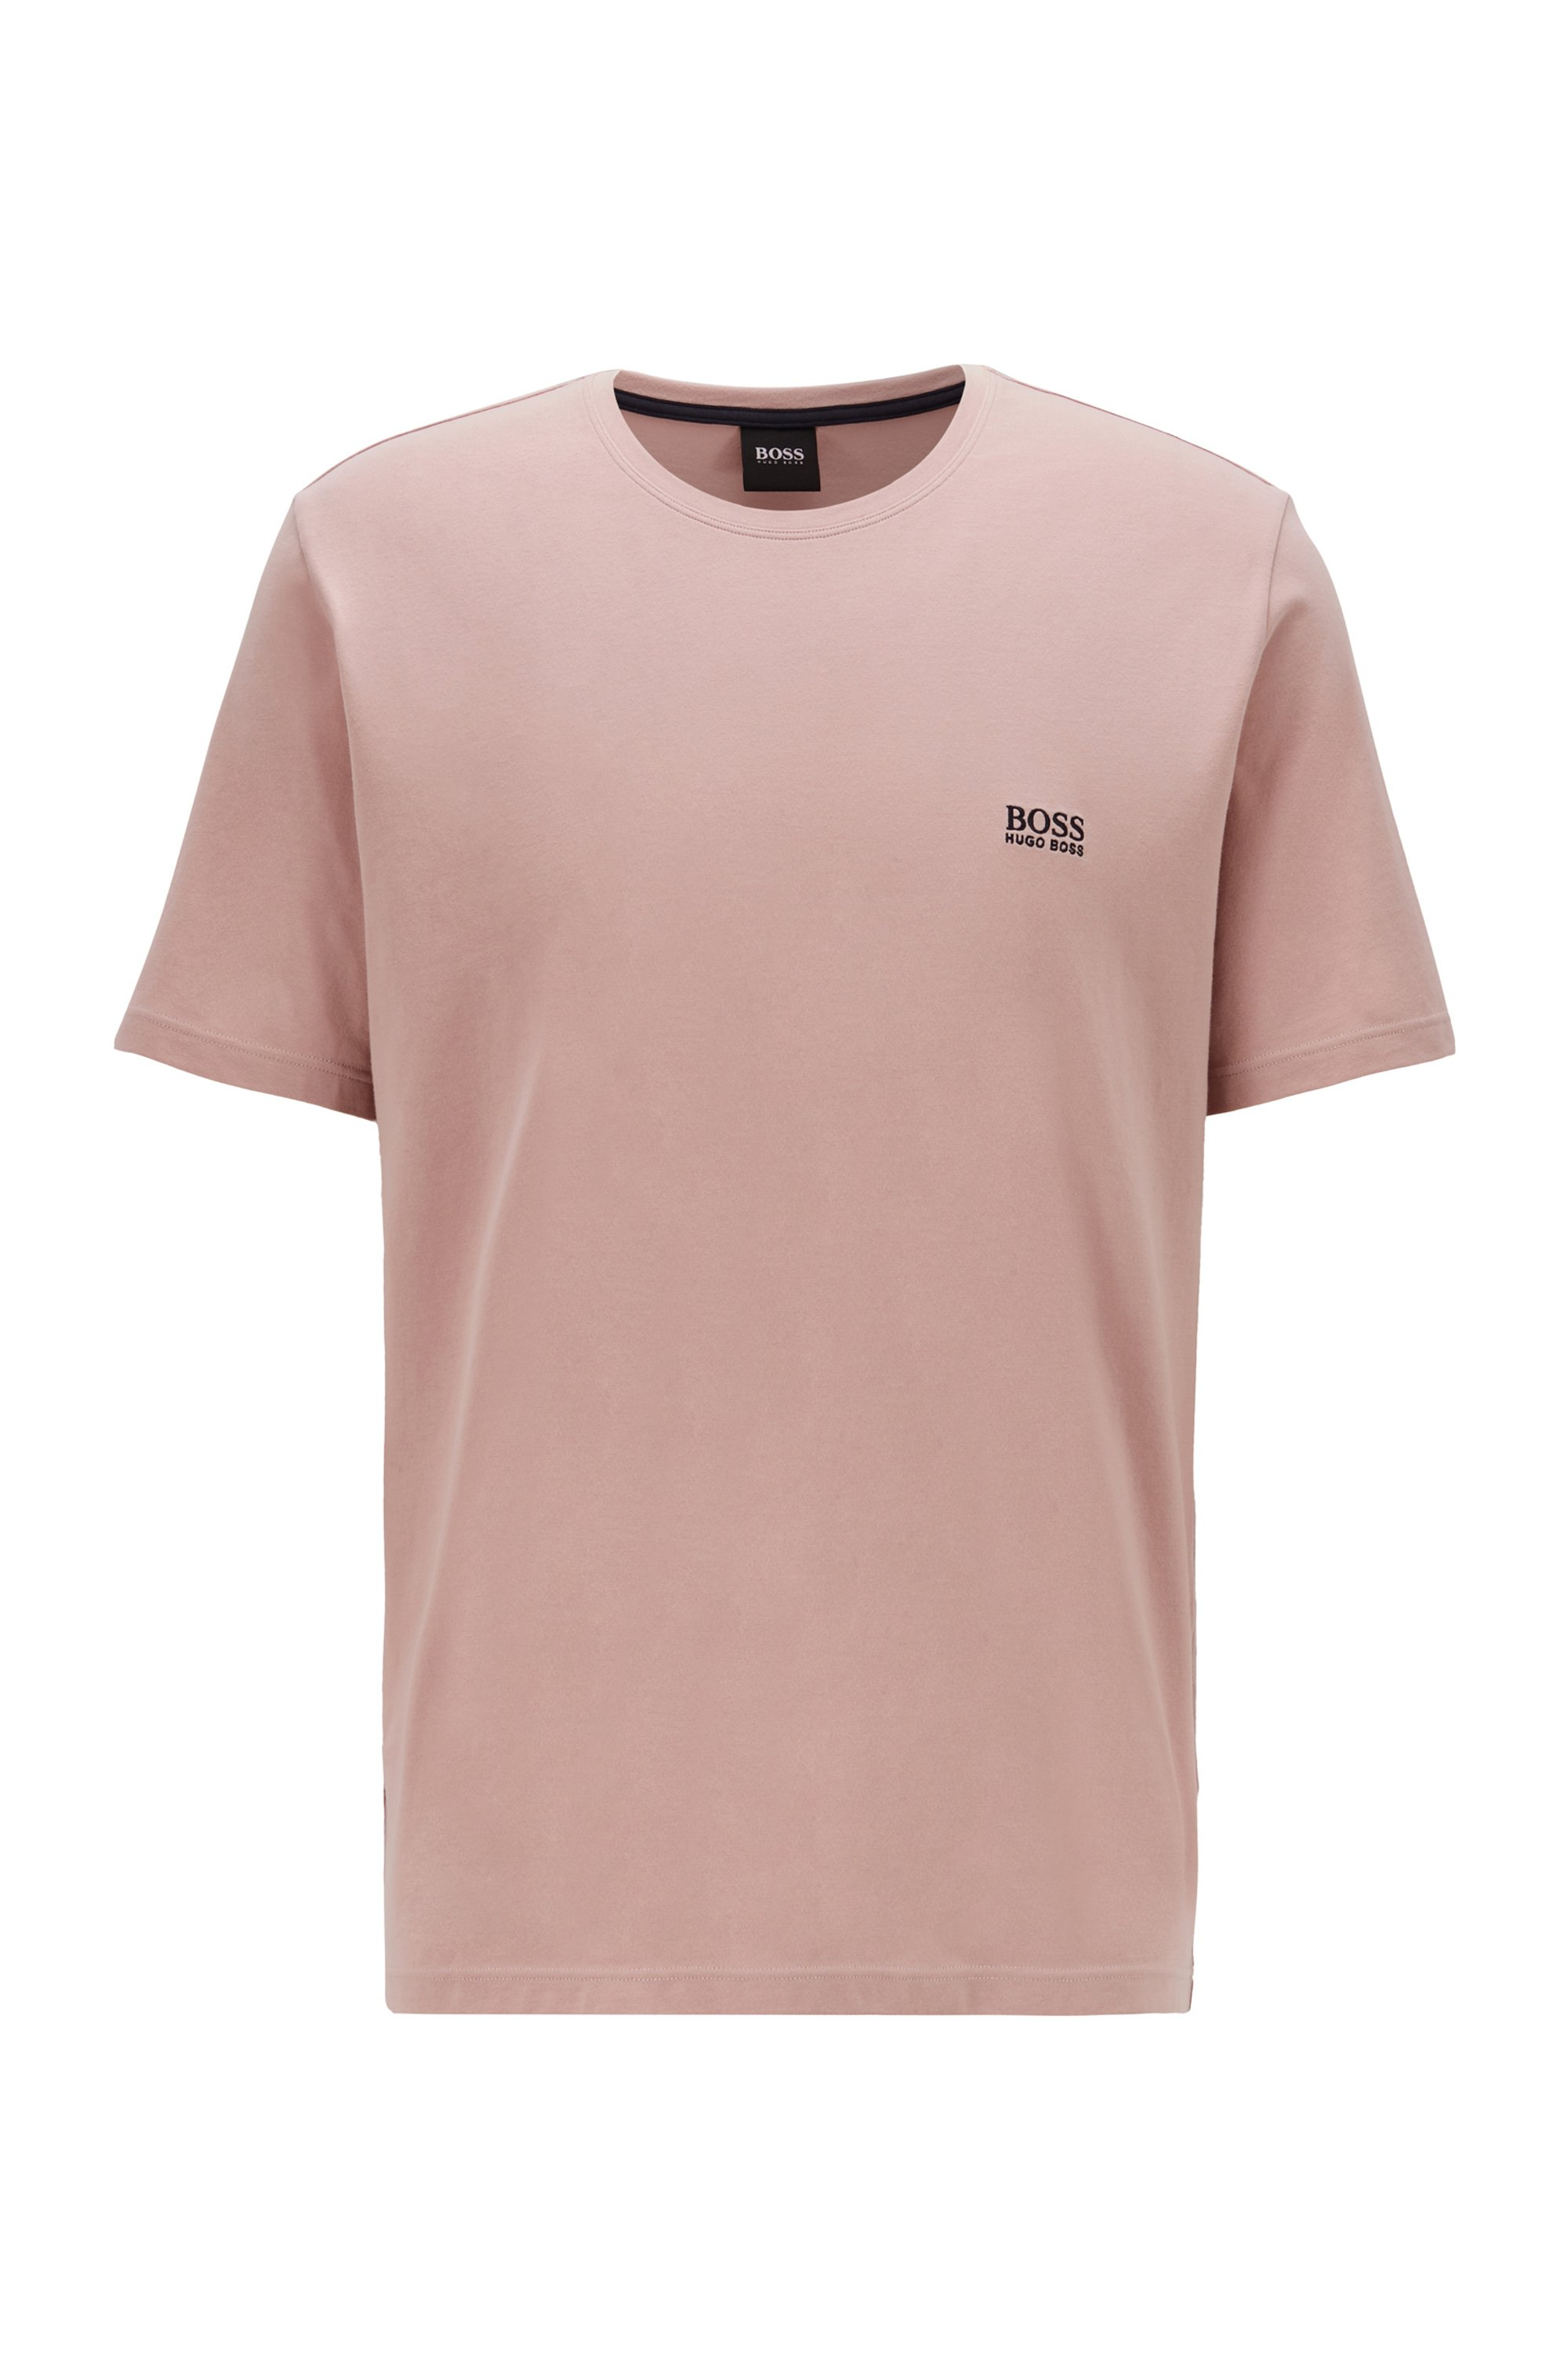 Loungewear T-shirt in stretch cotton, light pink